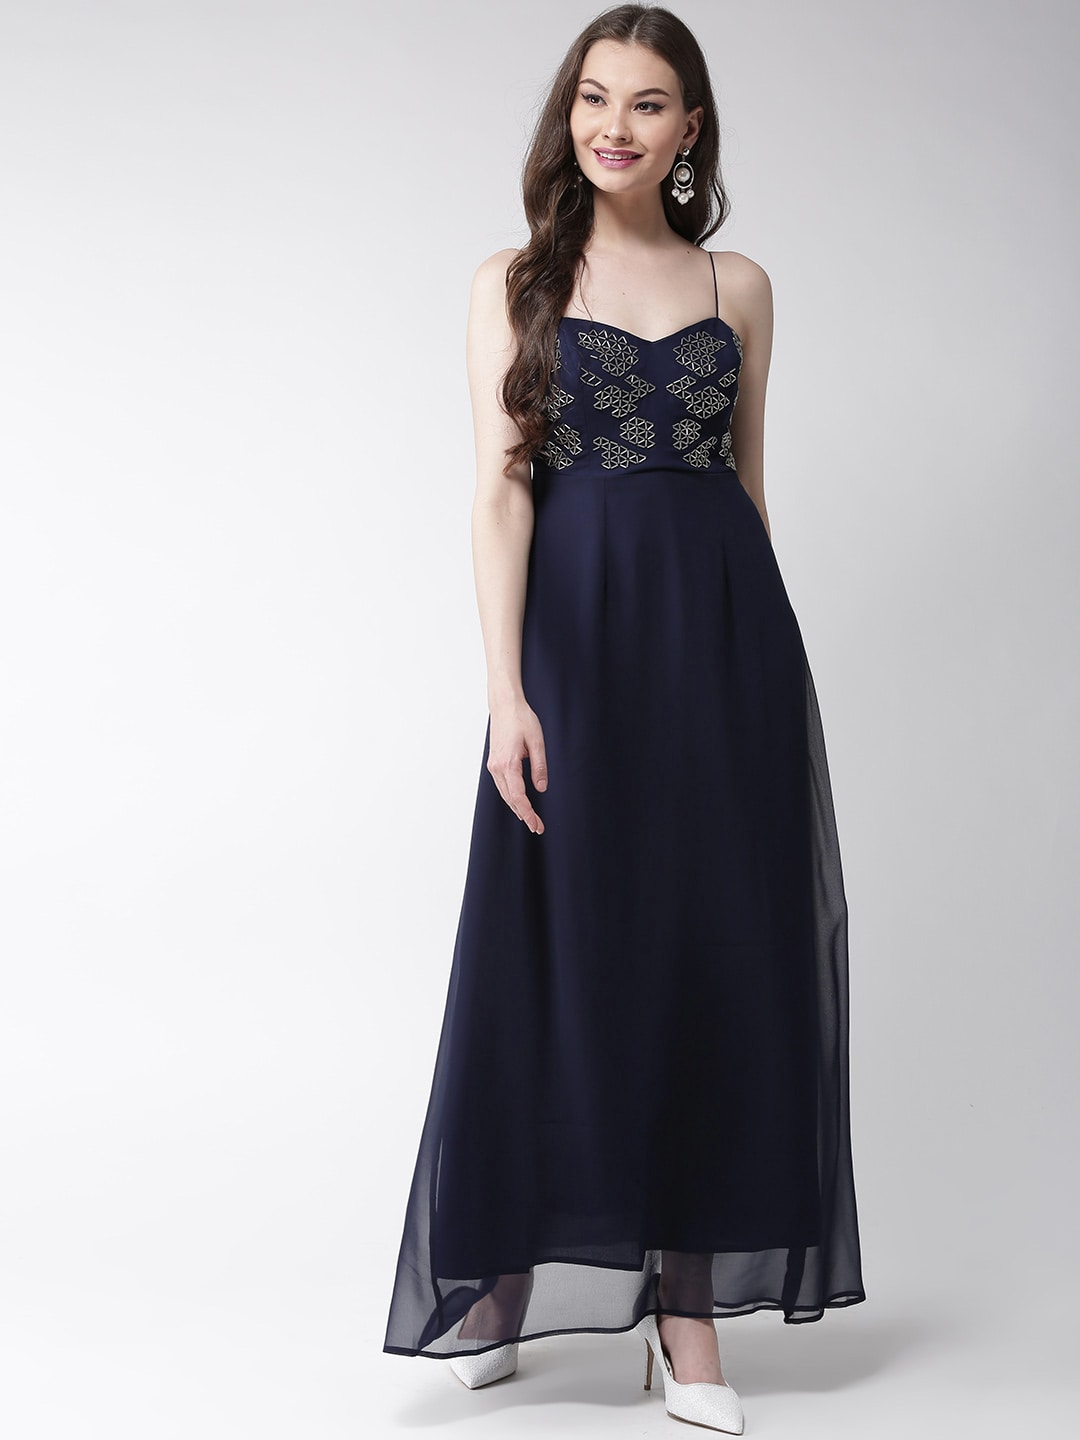 a9b2e17e756 Gowns - Shop for Gown Online at Best Price